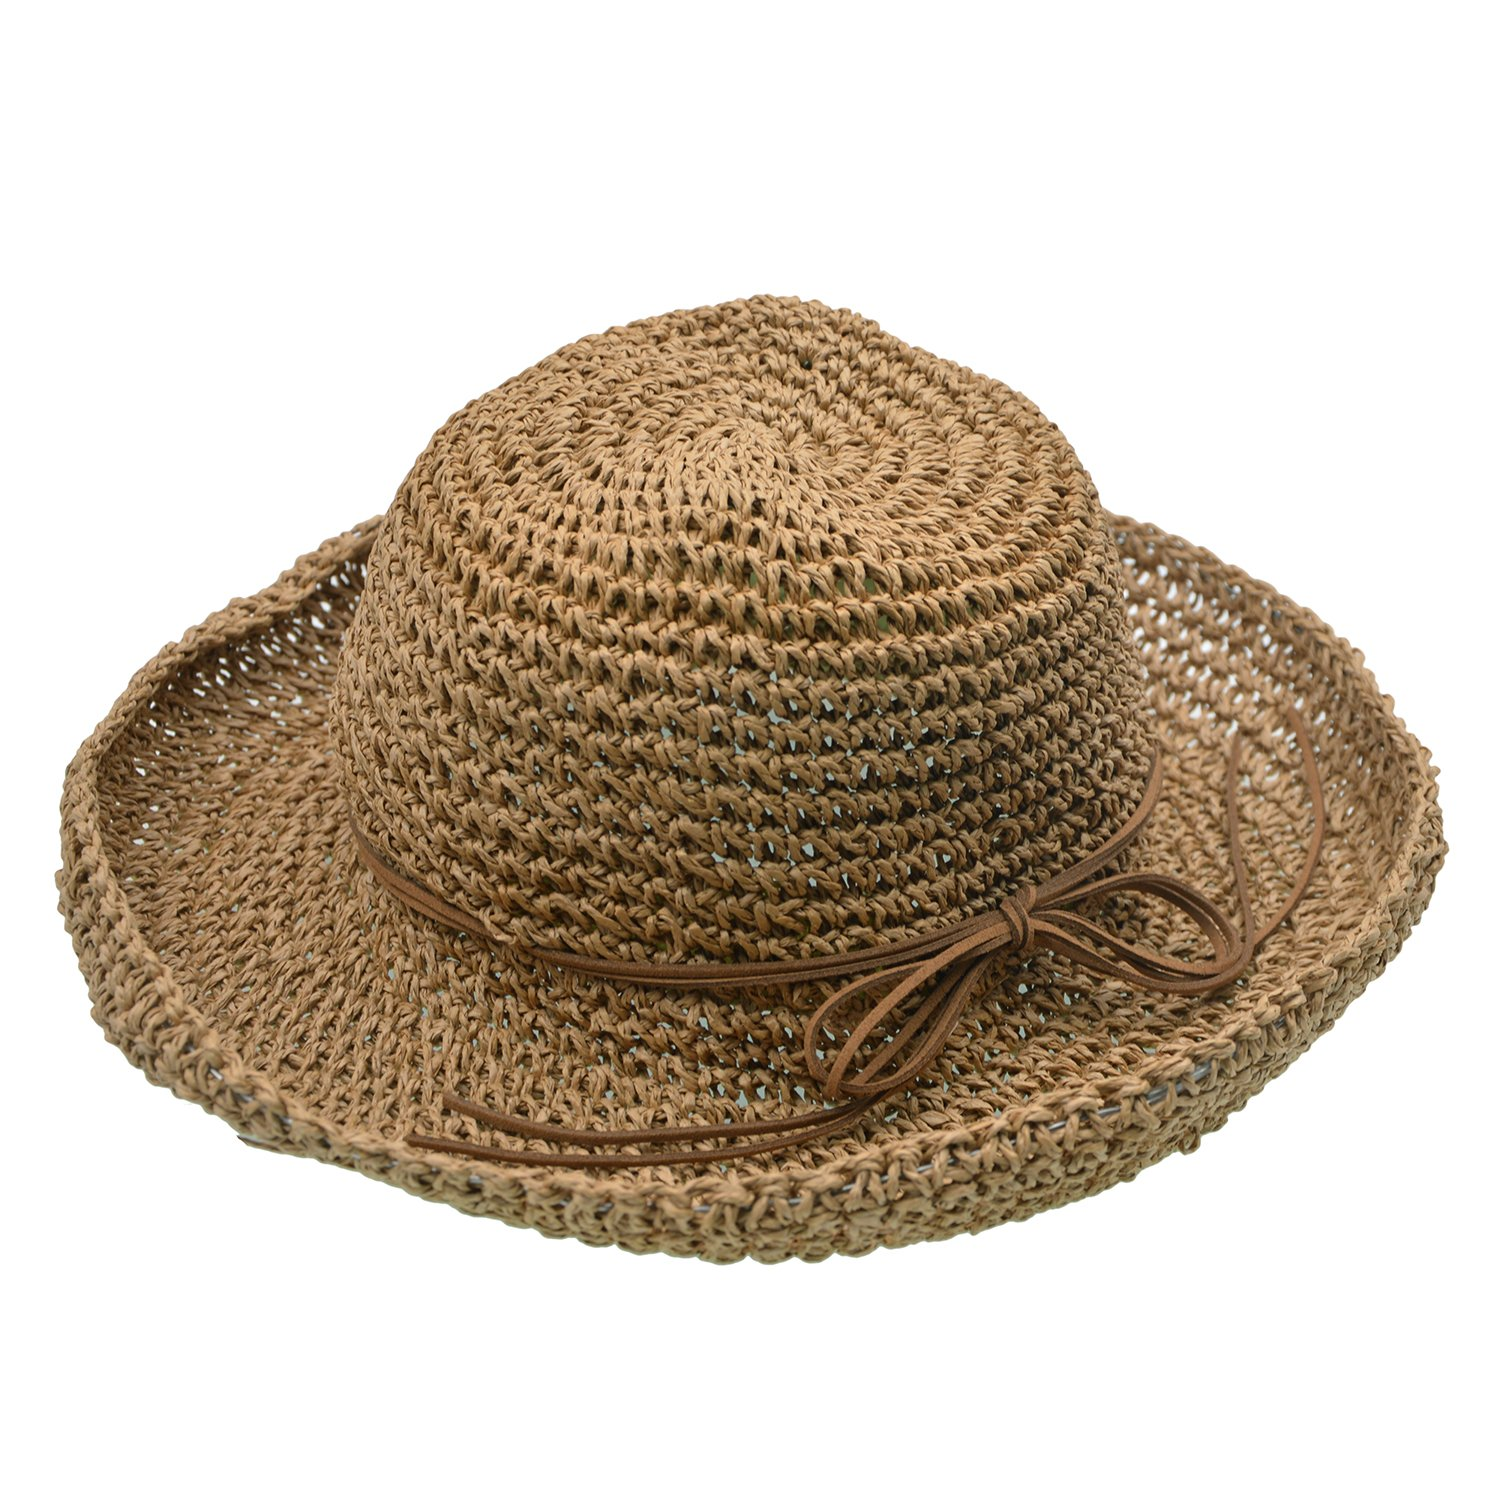 UPhitnis Foldable Sun Hats For Women | Straw Hats For Summer | Weave Texture & Wide Brim For Beach Hiking Walking Traveling